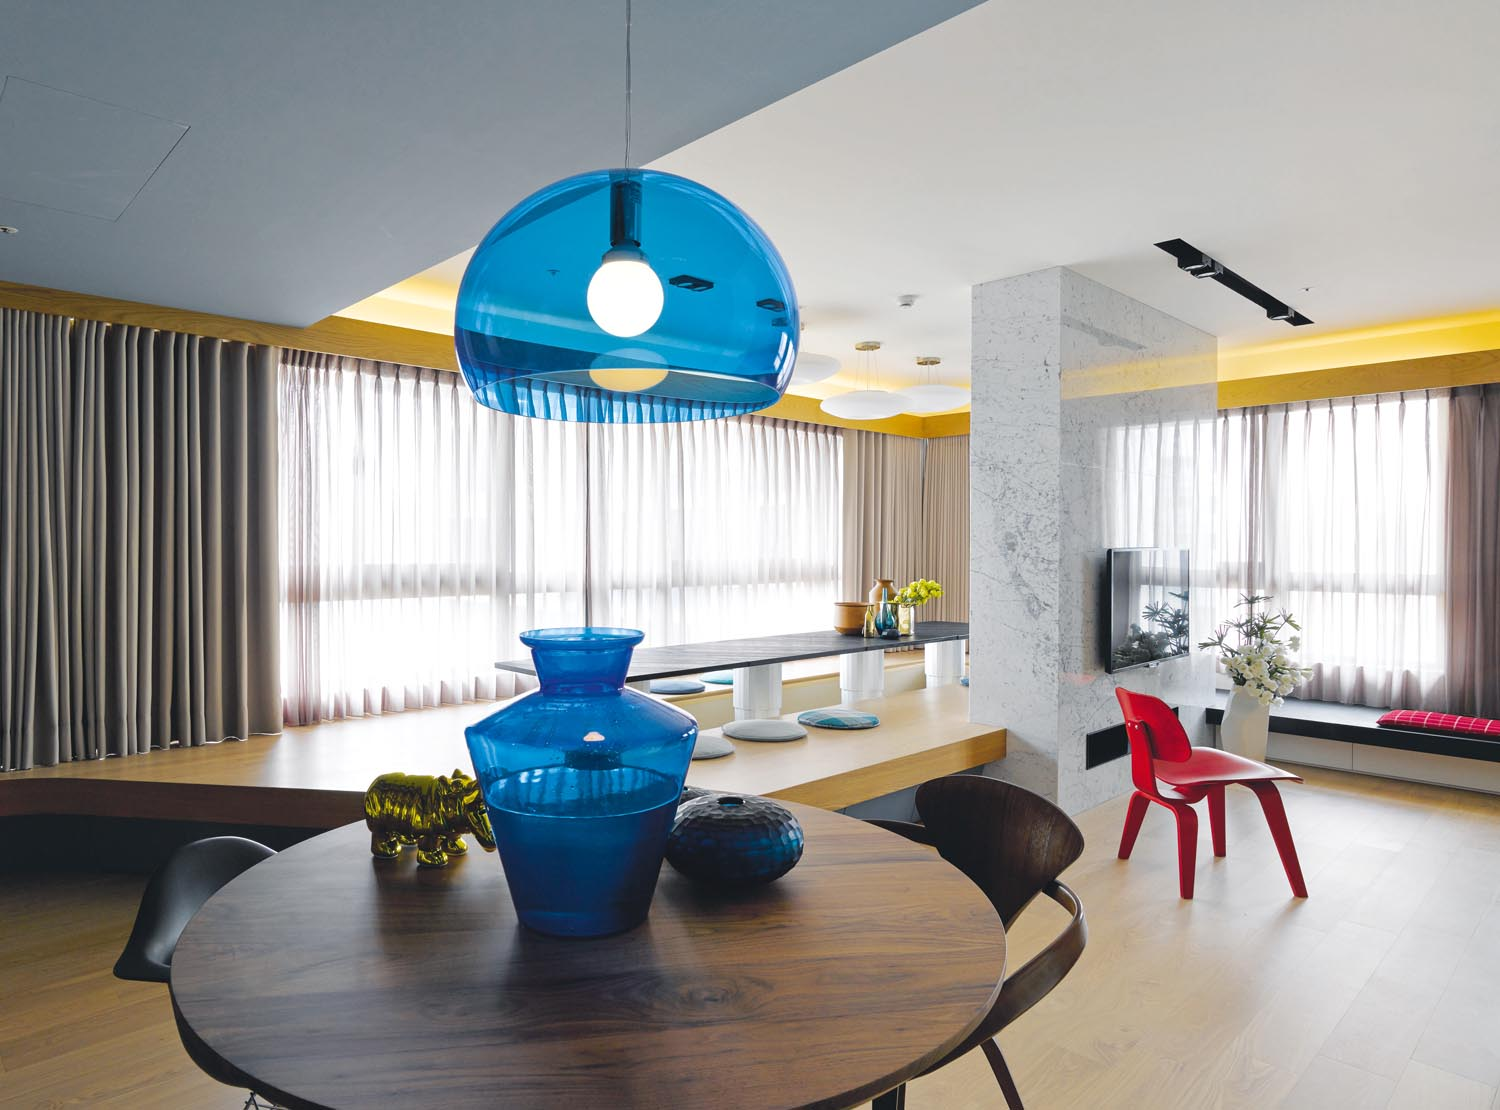 Blue accessories add depth and ambience to the neutral space